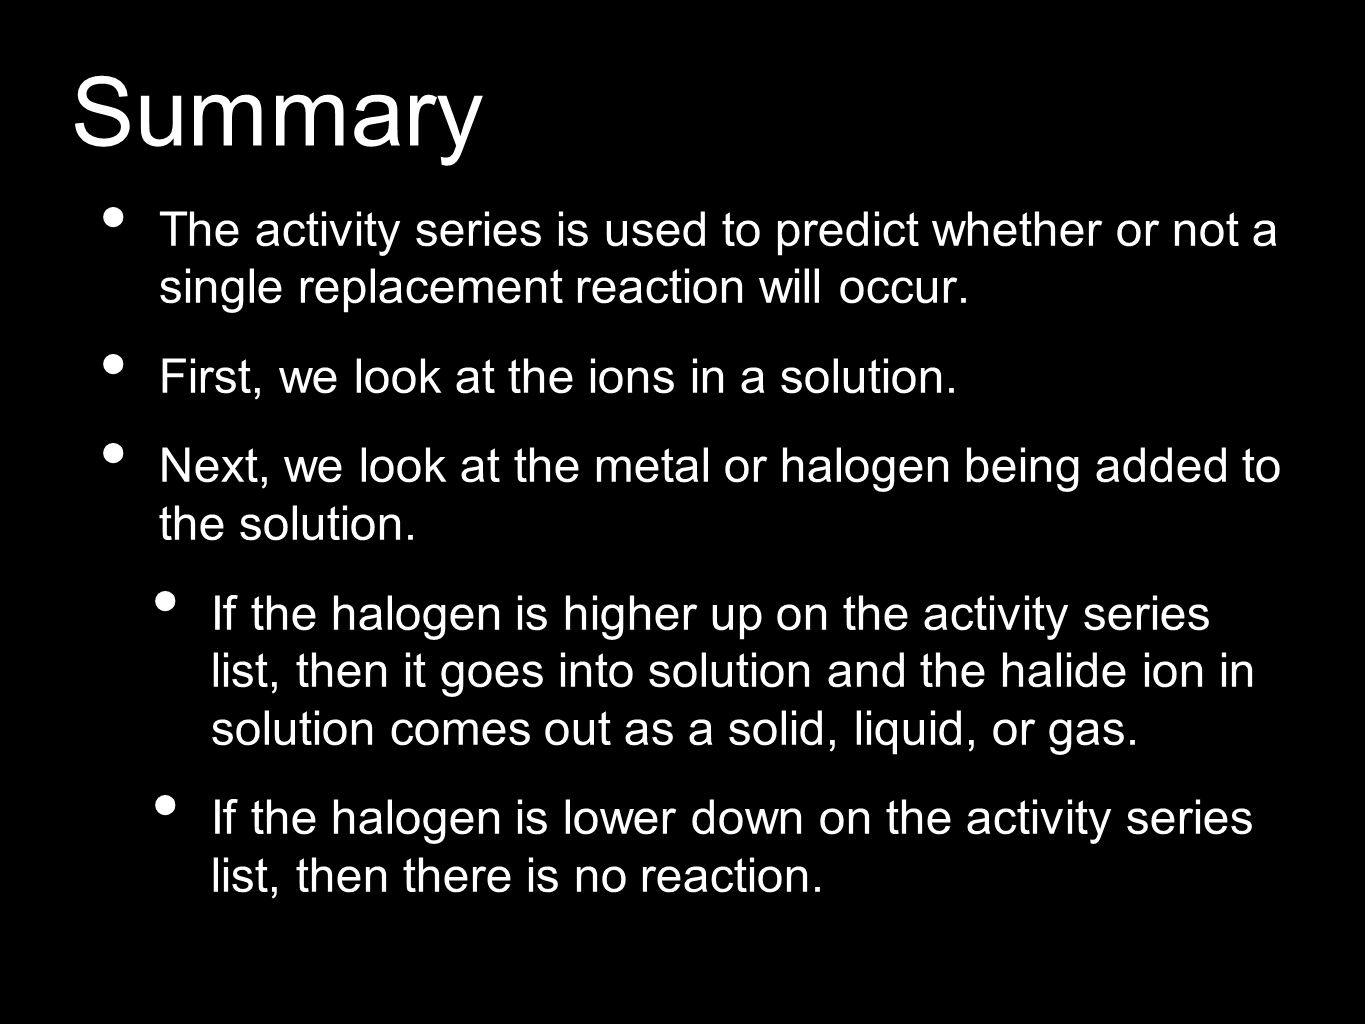 Summary The activity series is used to predict whether or not a single replacement reaction will occur.